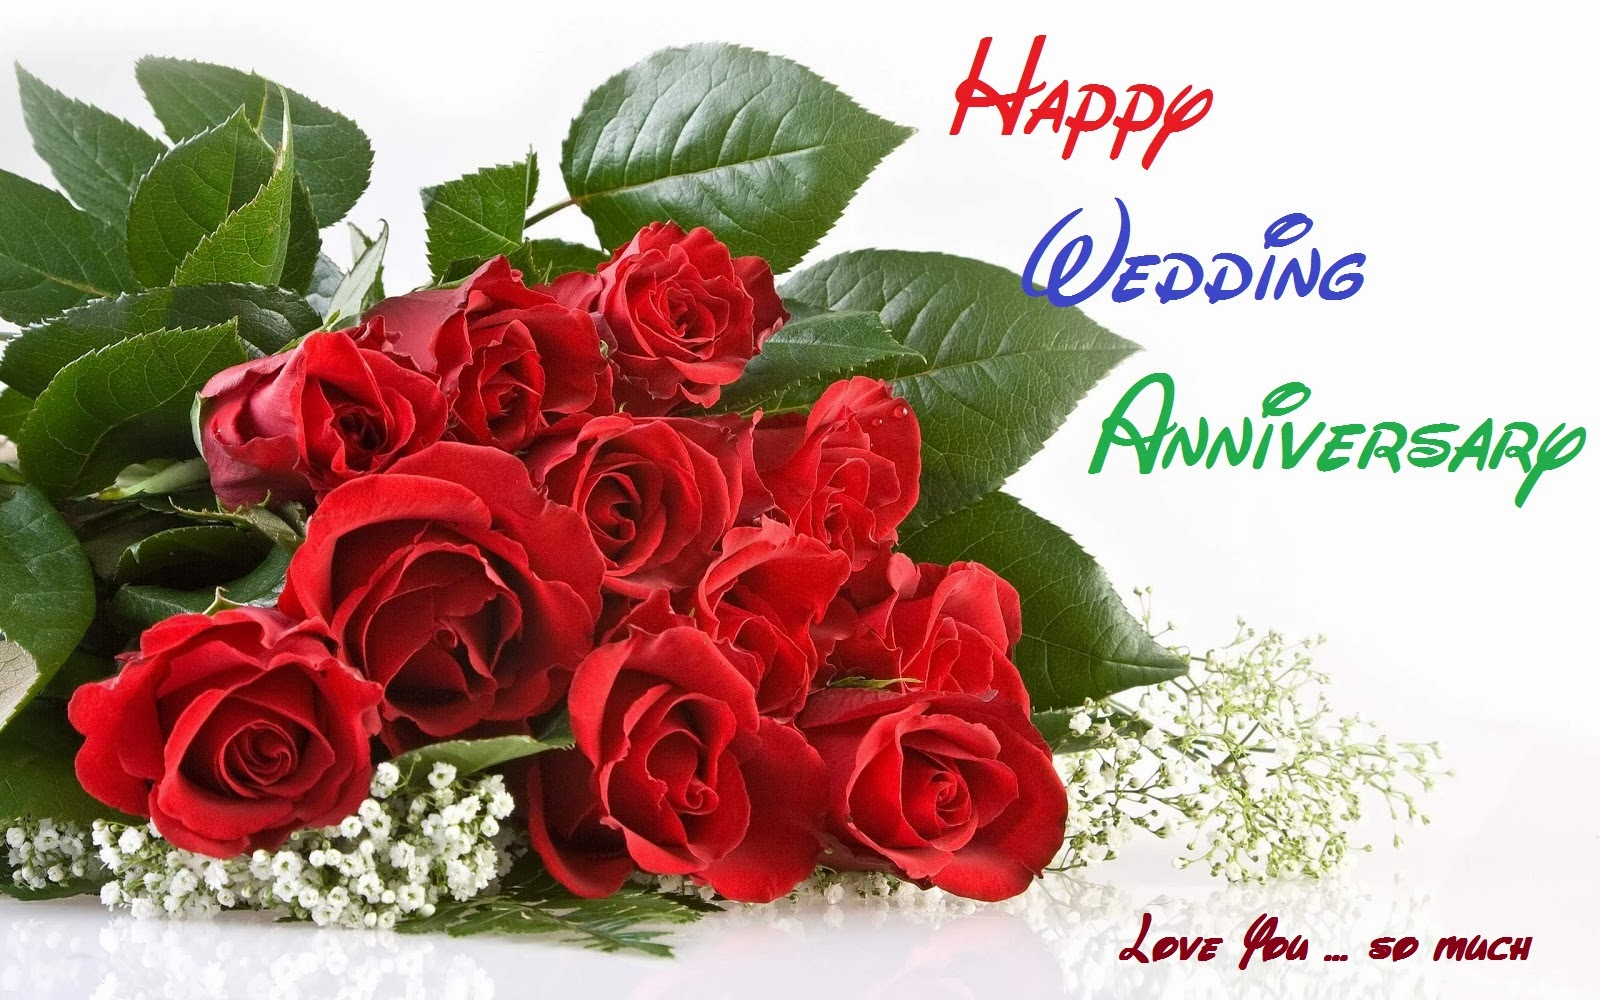 Best Wedding Anniversary Live Photo's, HD Wallpapers